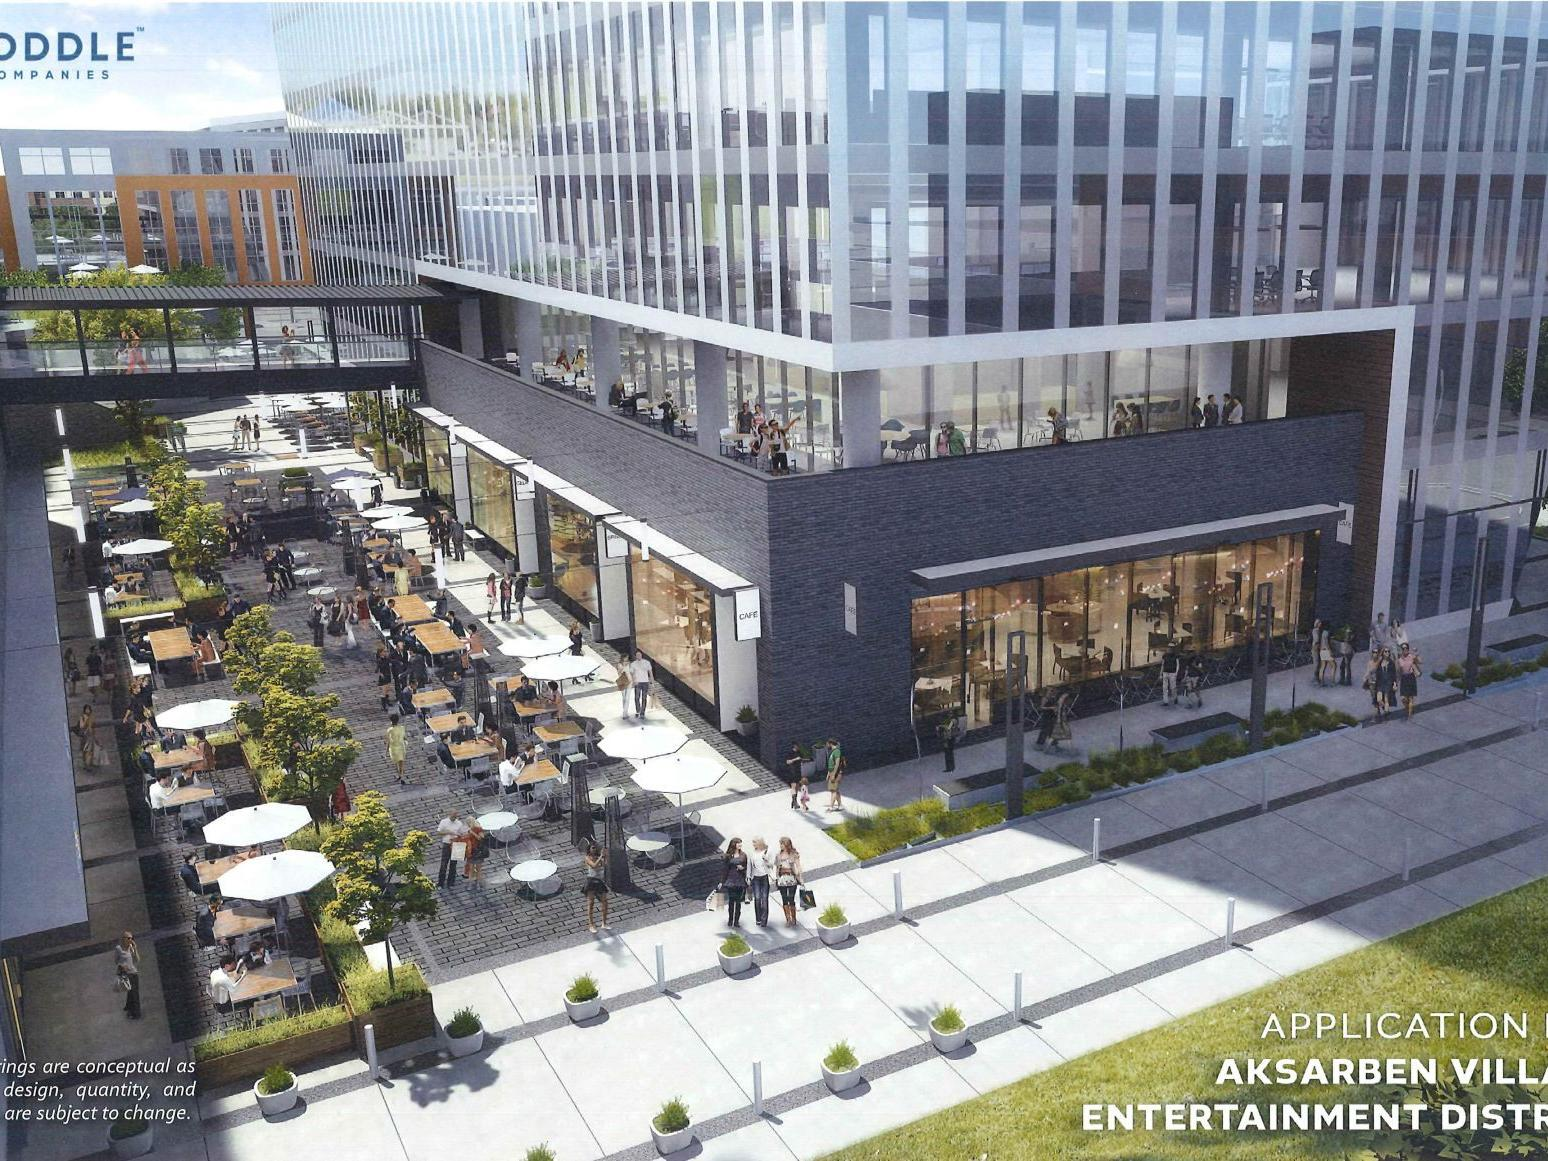 You could soon carry a drink around Aksarben Village. 'Entertainment district' pitched for HDR area